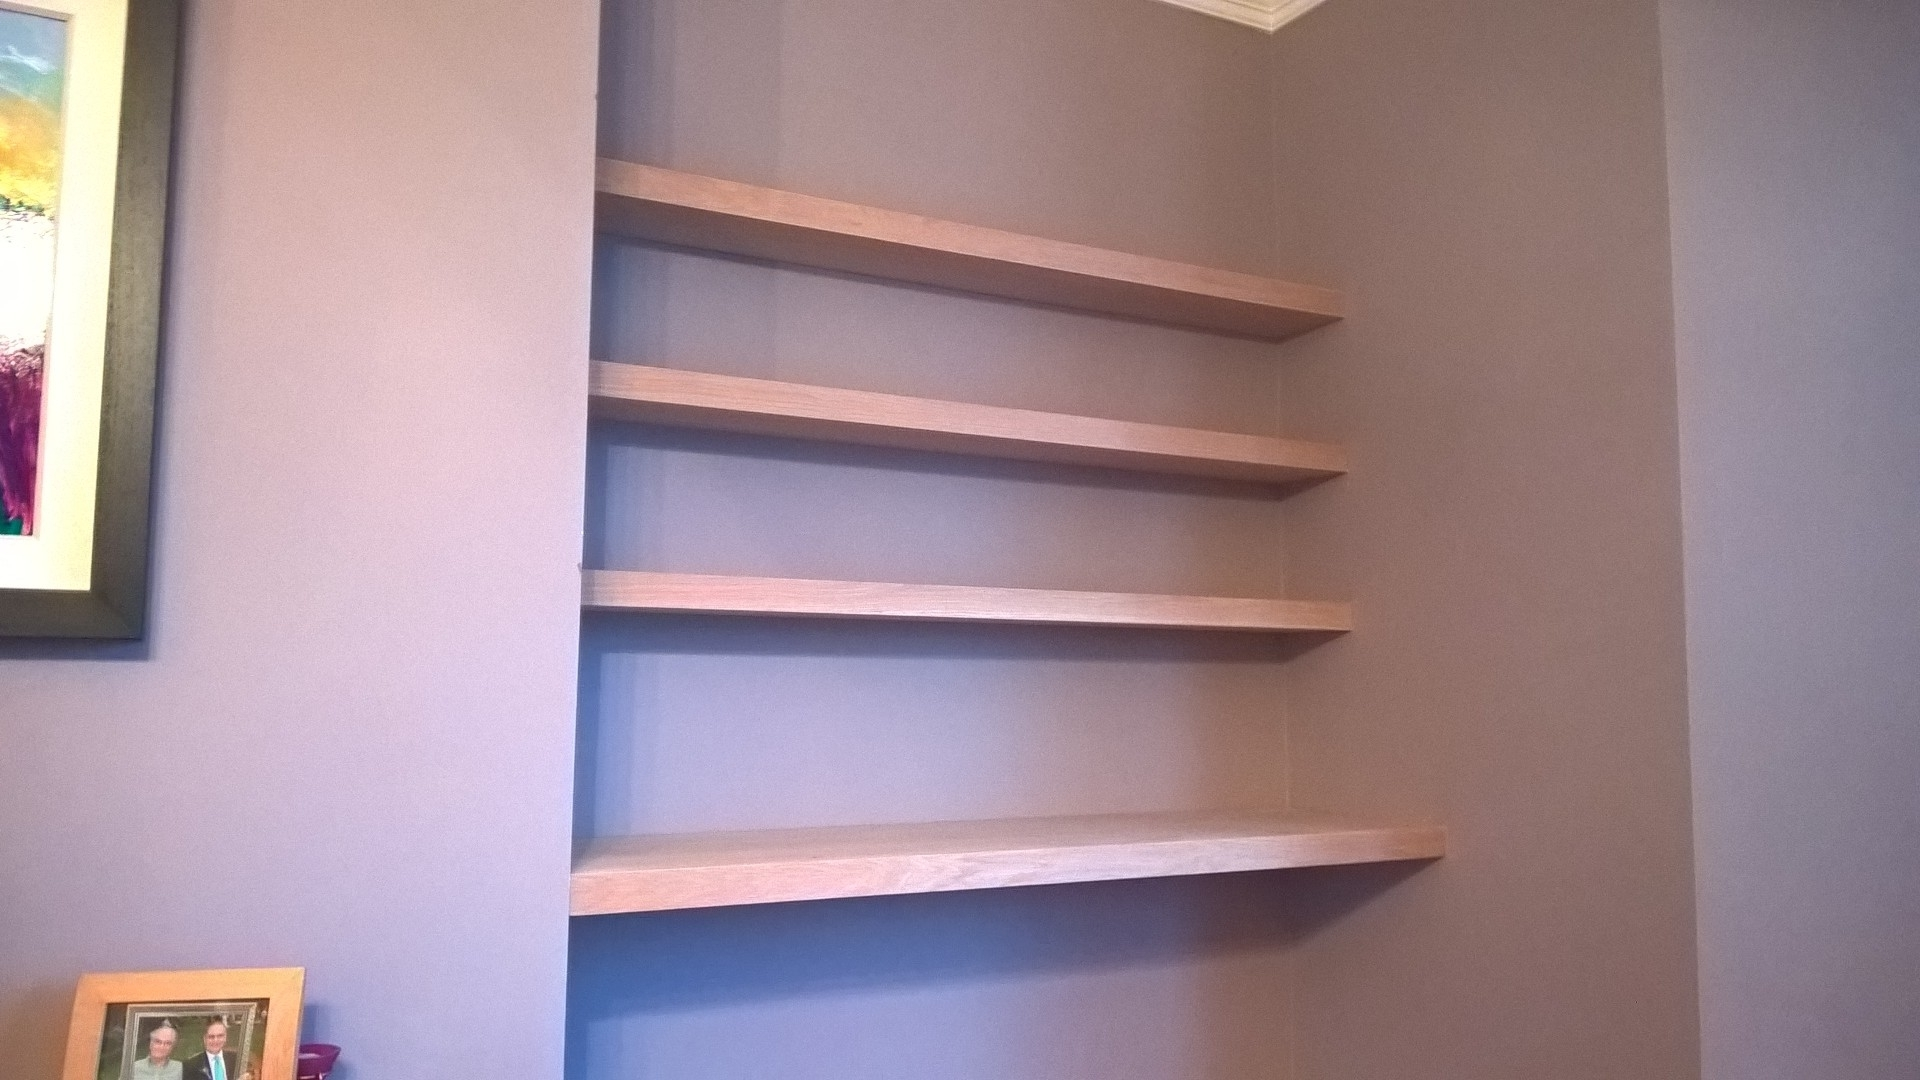 Shelves : Swell Oak Shelves Floating Gallery Fitted Solid Hardwood For Most Popular Fitted Shelving Units (View 15 of 15)